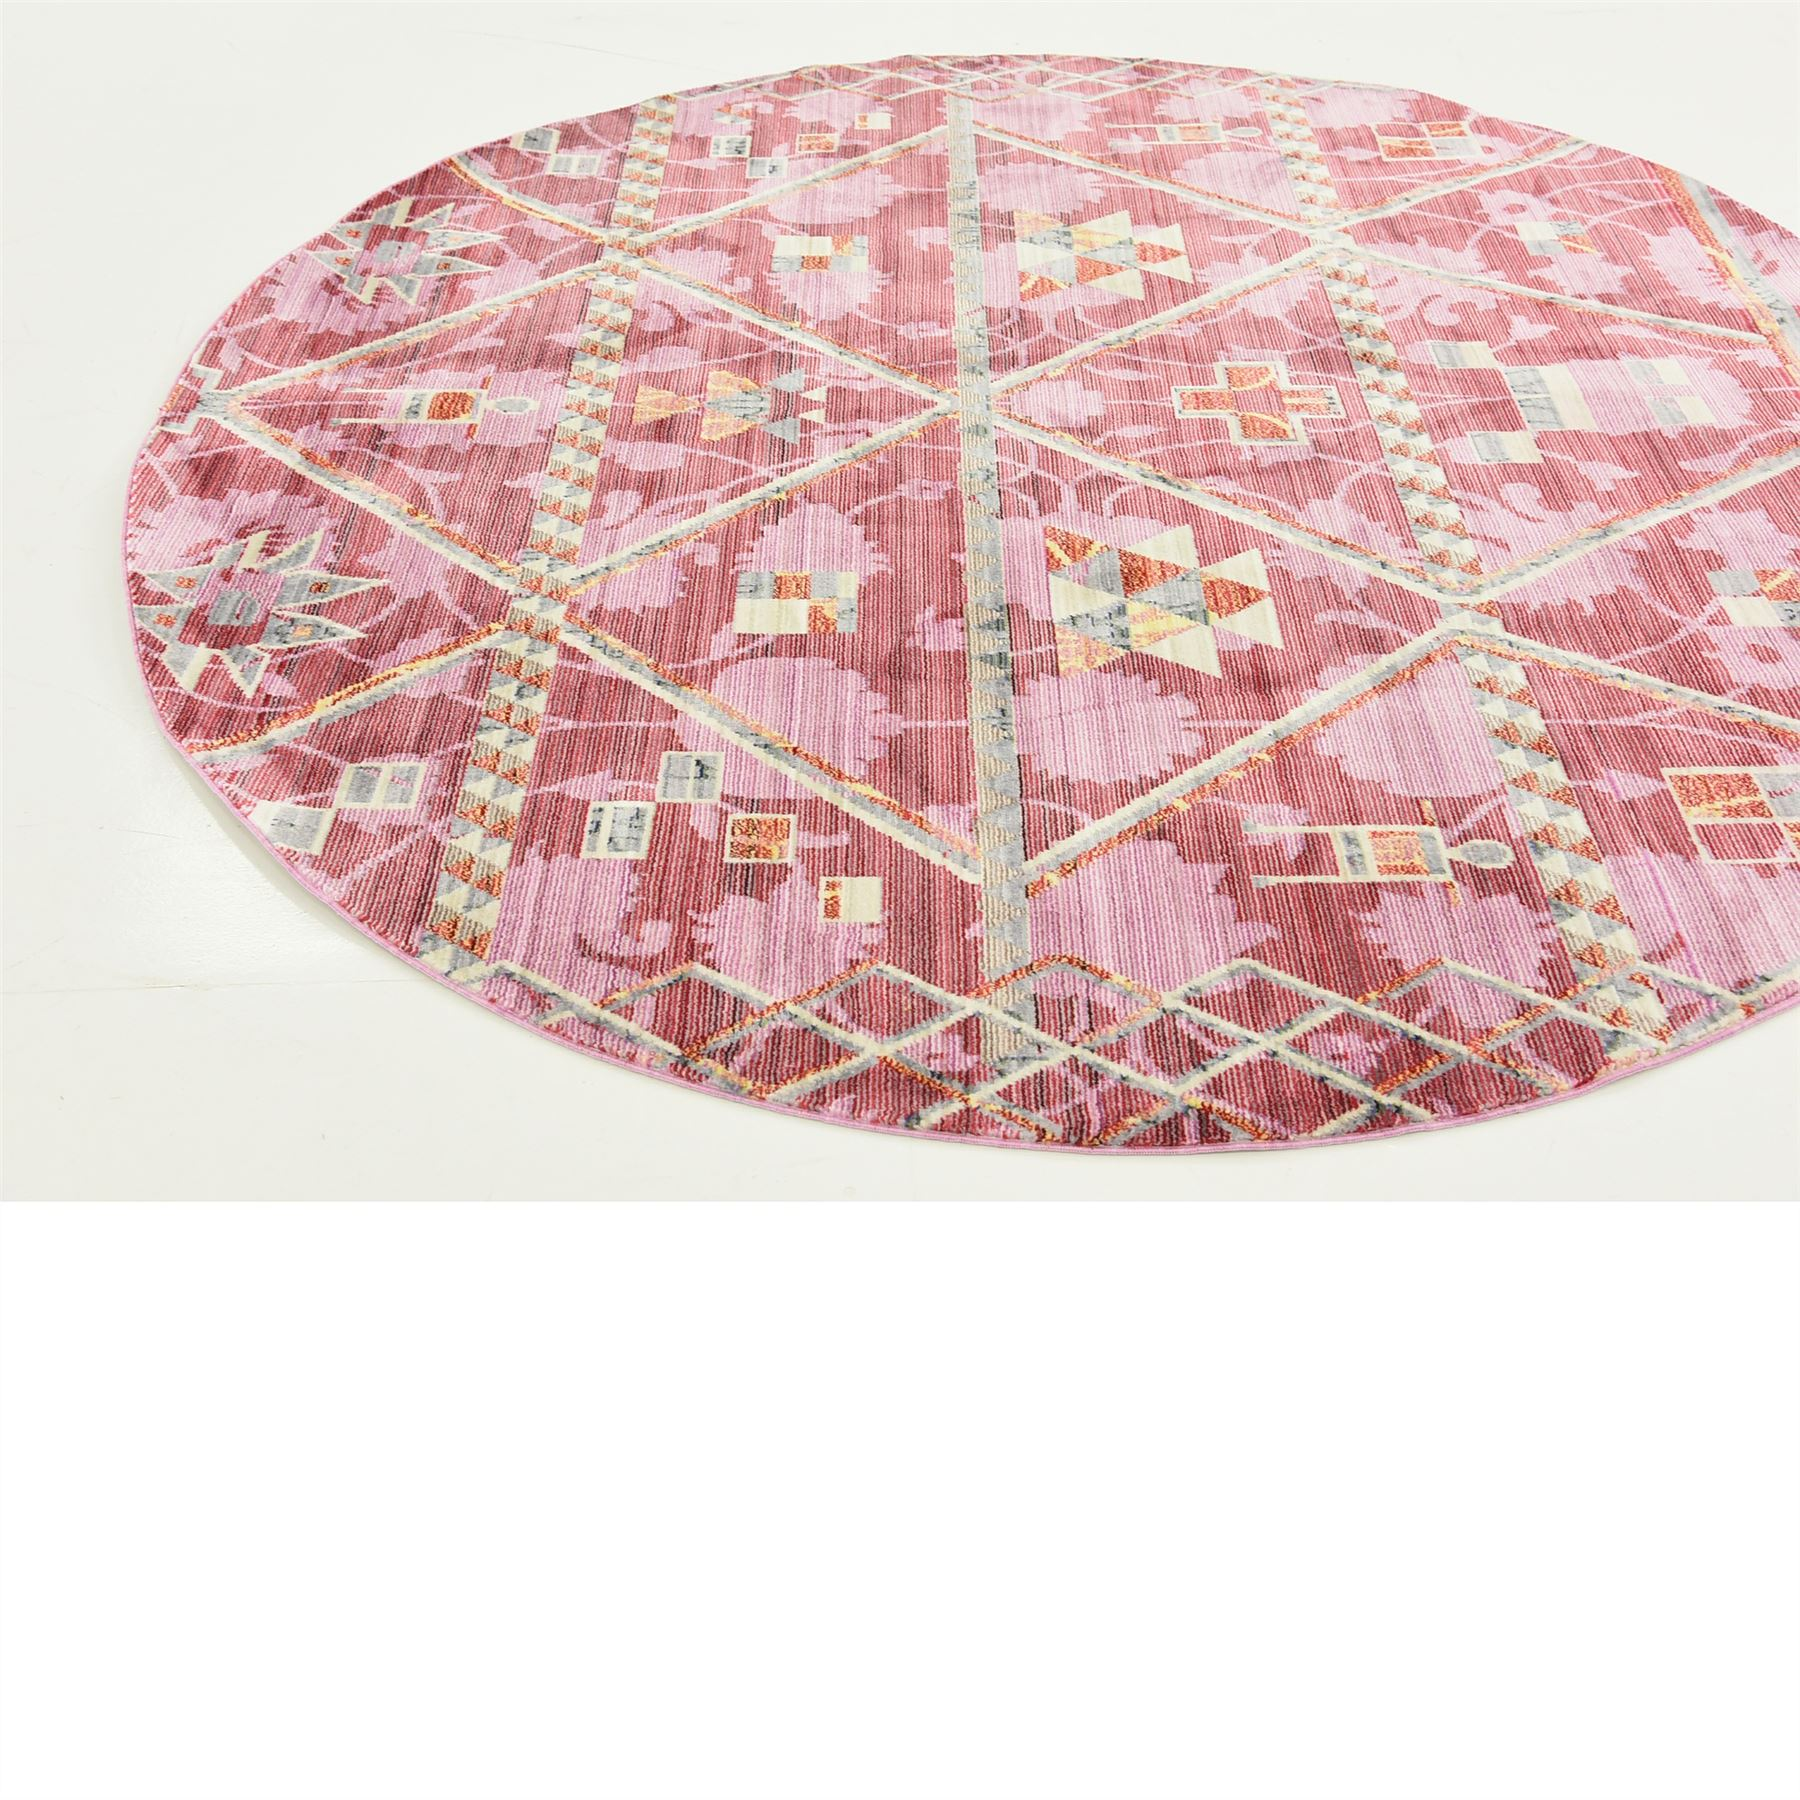 Aria design limited modern rugs area floor rugs carpet for Modern design area rugs